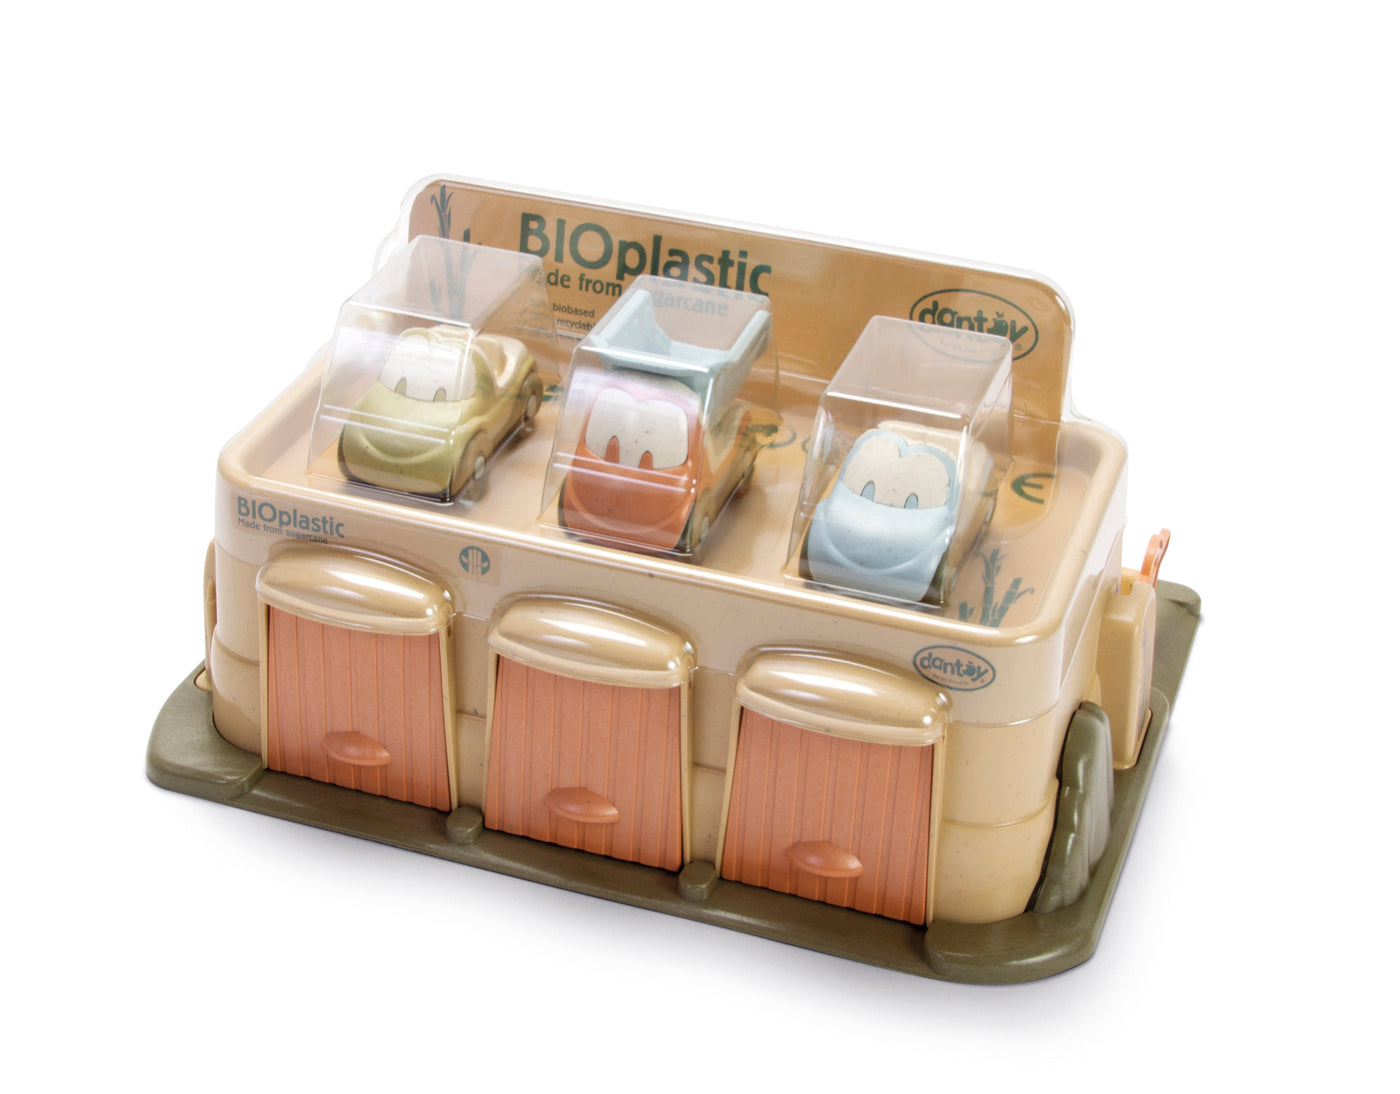 Car Park with 3 Cars Organic Plastic(BioPlastic)